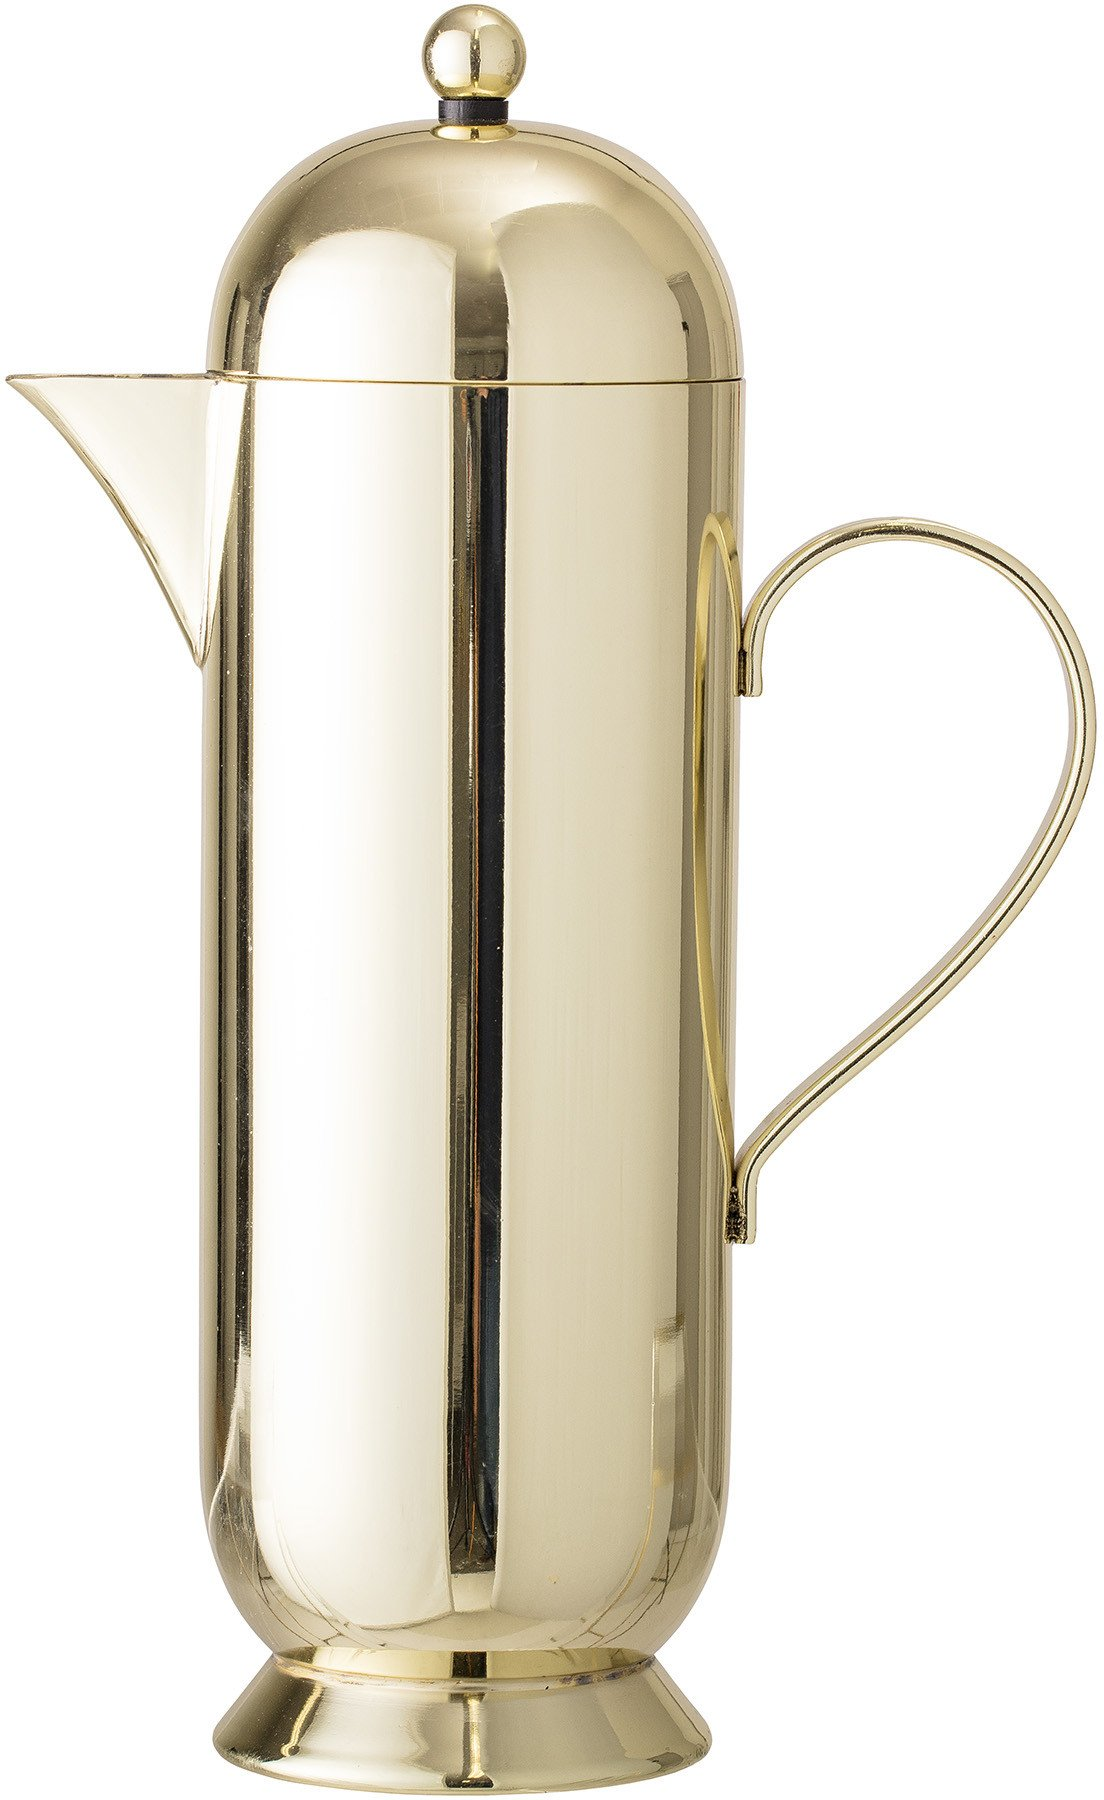 Gold Stainless Steel Coffee Press, Bloomingville - 502255 - photo